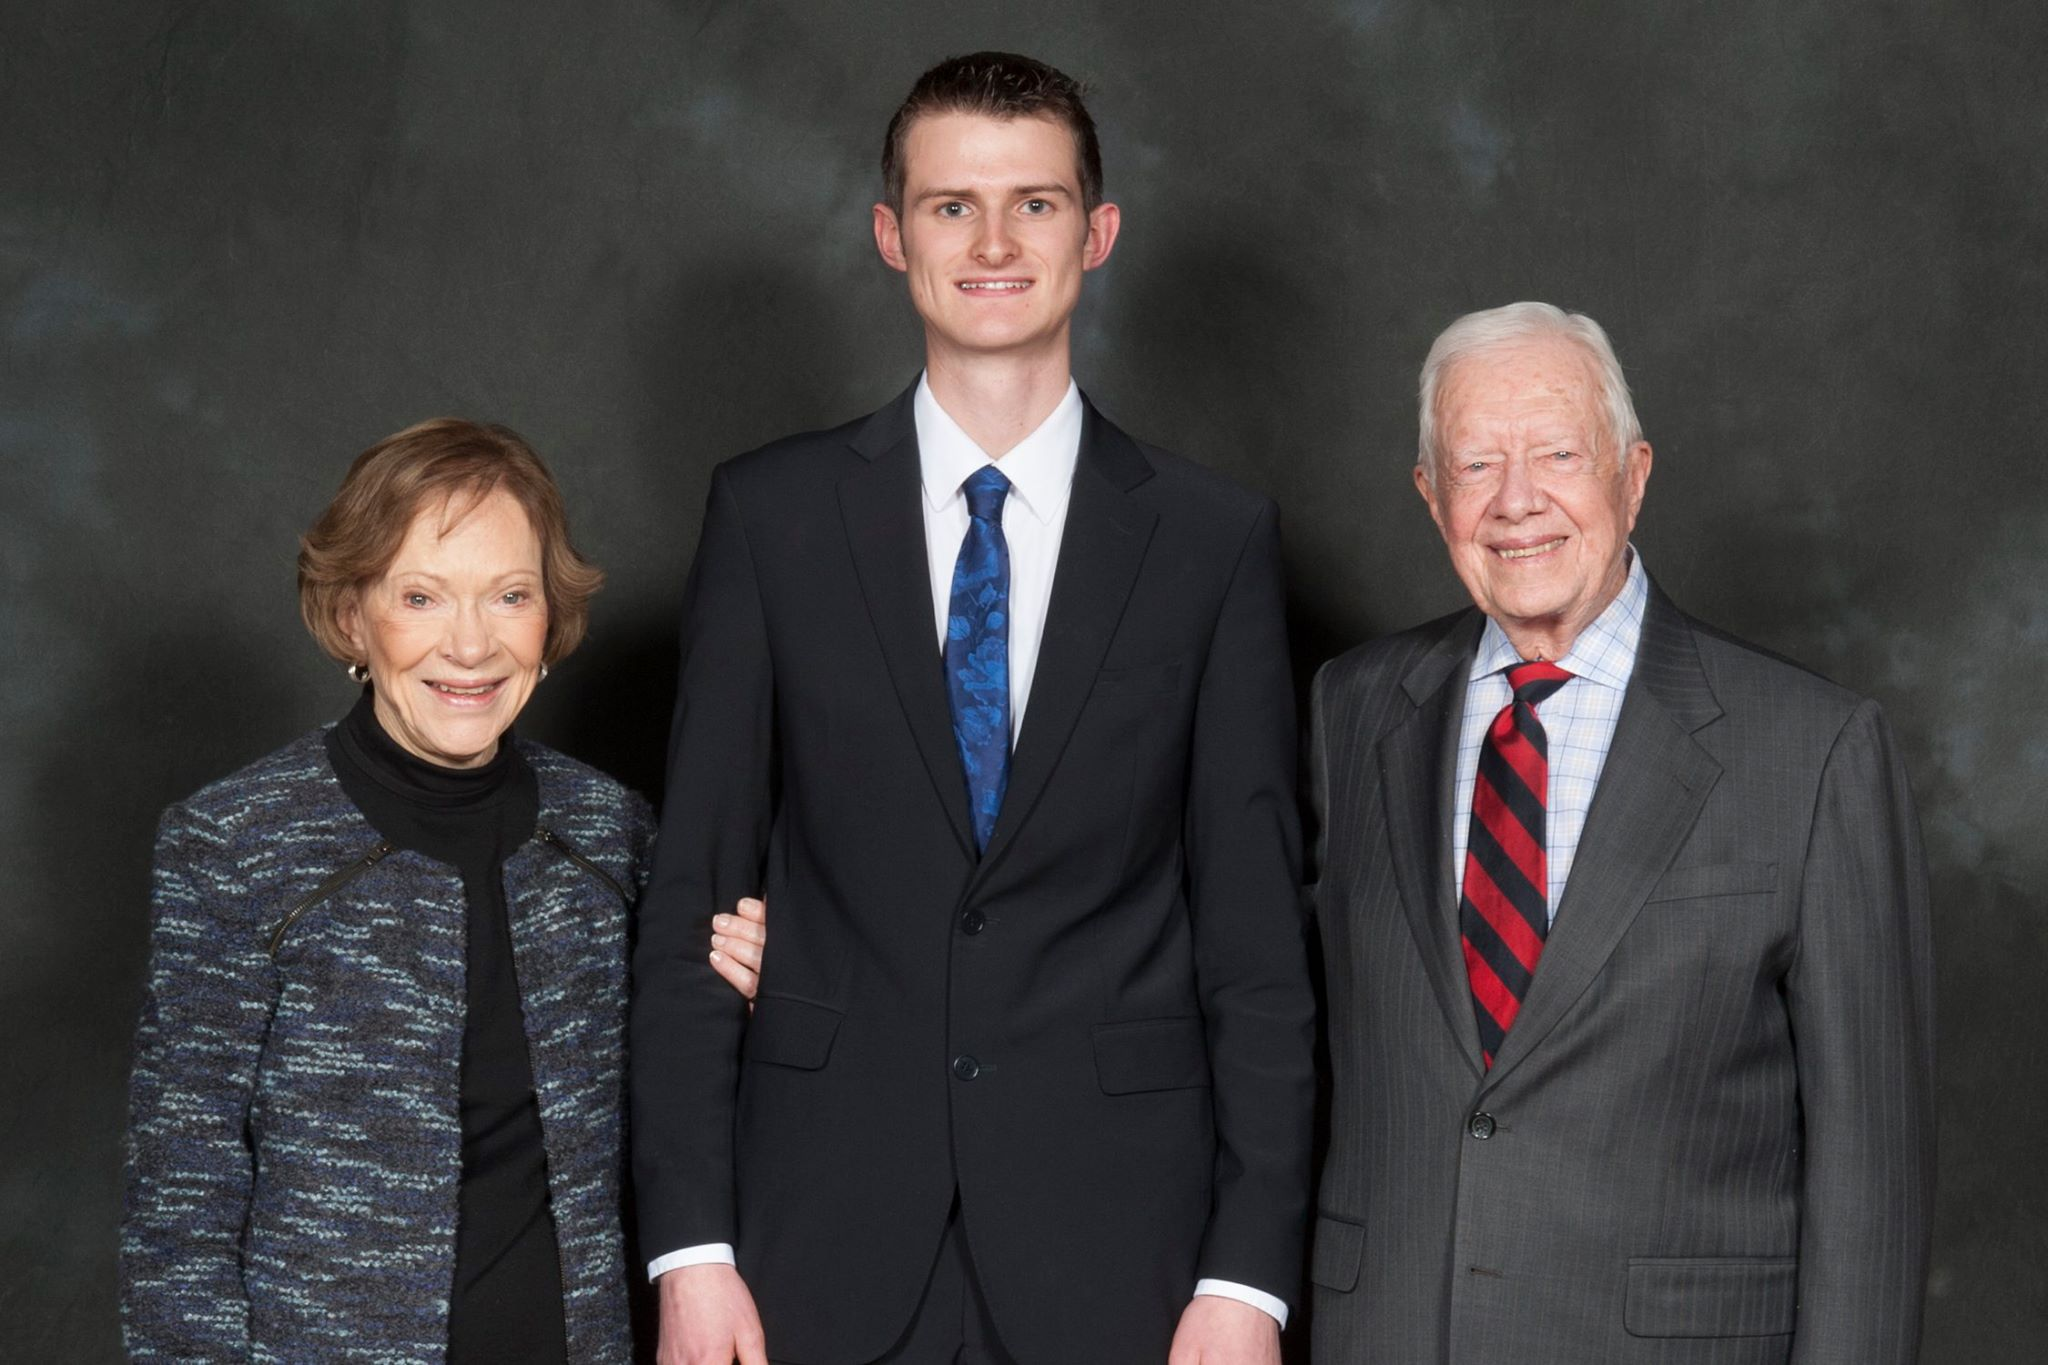 Aged 21, I worked for President and Mrs Carter, who inspired me with their lifetimes of public service. President Carter never dropped a single bomb, and he has since devoted his life to improving healthcare outcomes across the world.